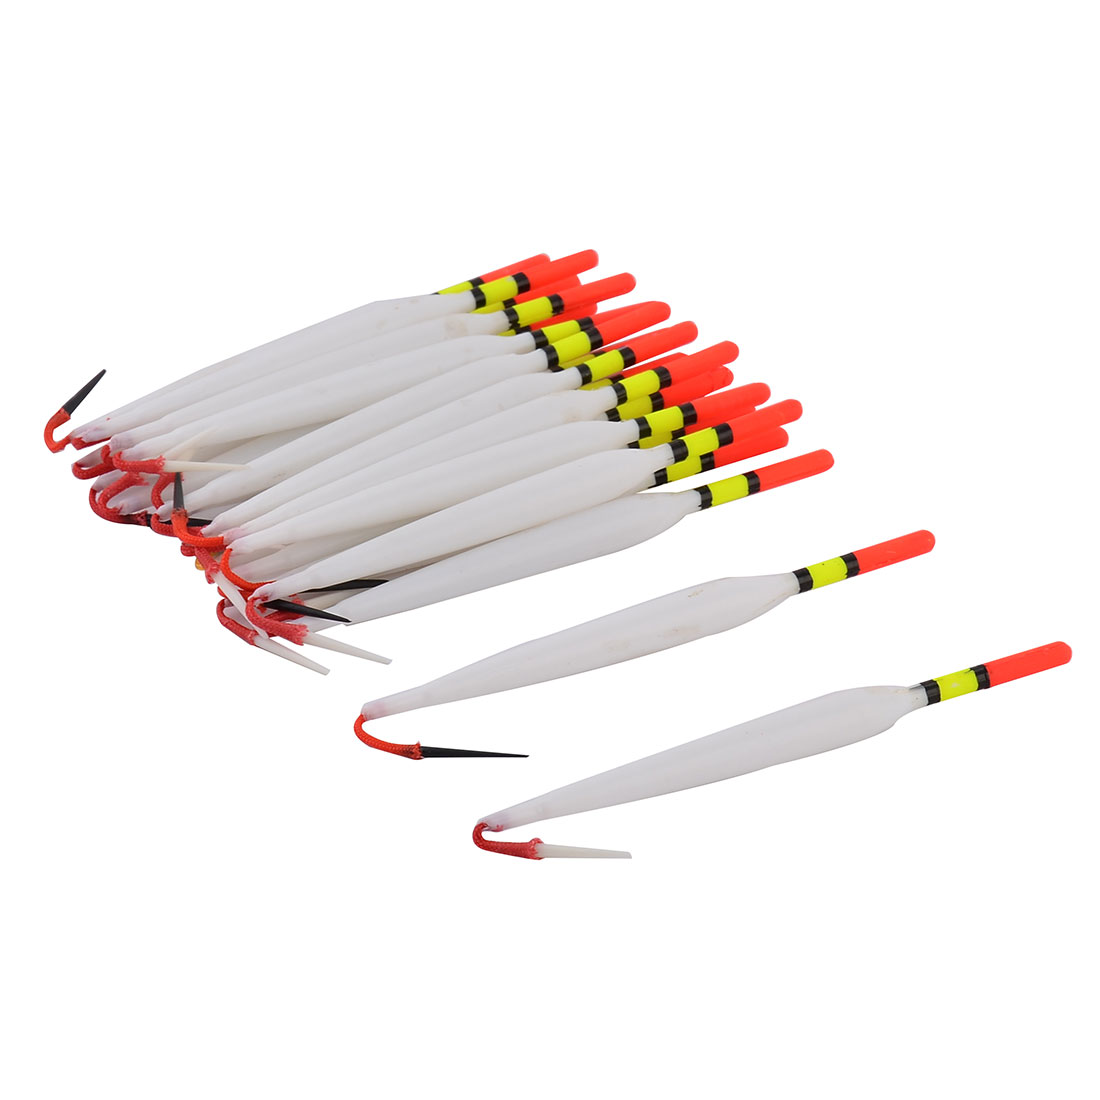 Freshwater Plastic Floating Slip Drift Tube Indicator Fishing Bobber White 20pcs by